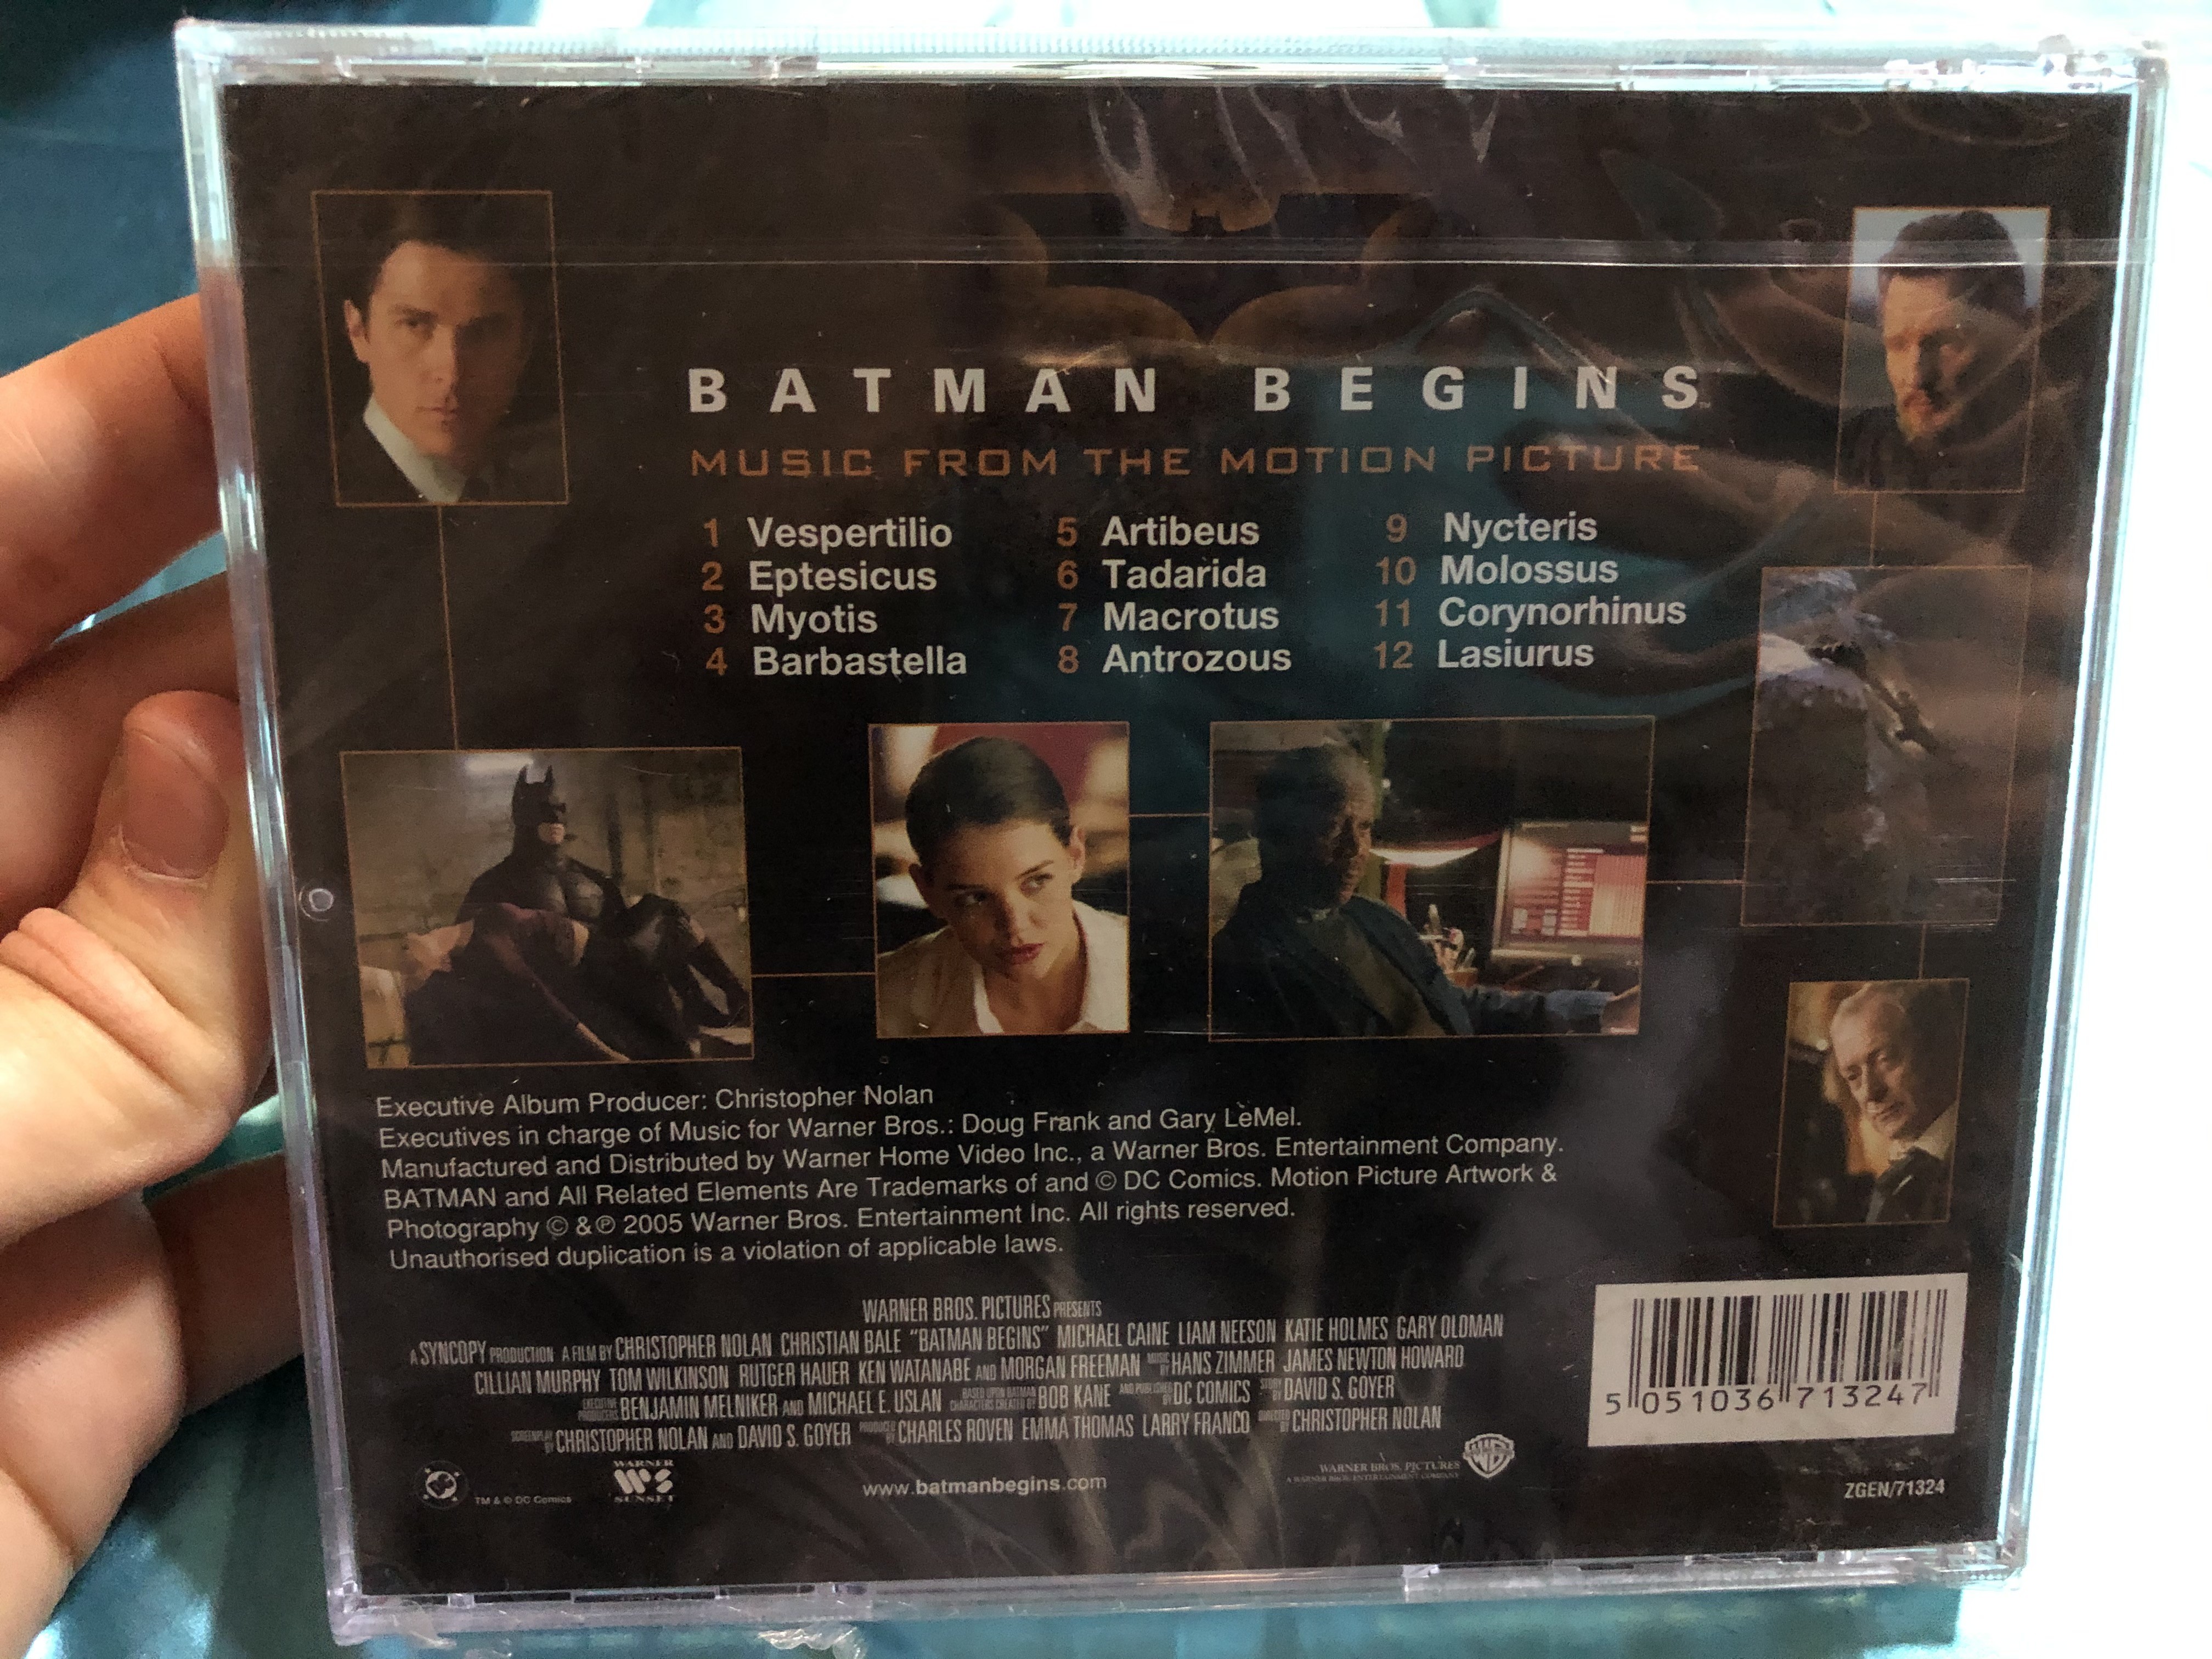 batman-begins-music-from-the-motion-picture-music-composed-by-hans-zimmer-and-james-newton-howard-warner-sunset-records-audio-cd-2005-zgen71324-3-.jpg